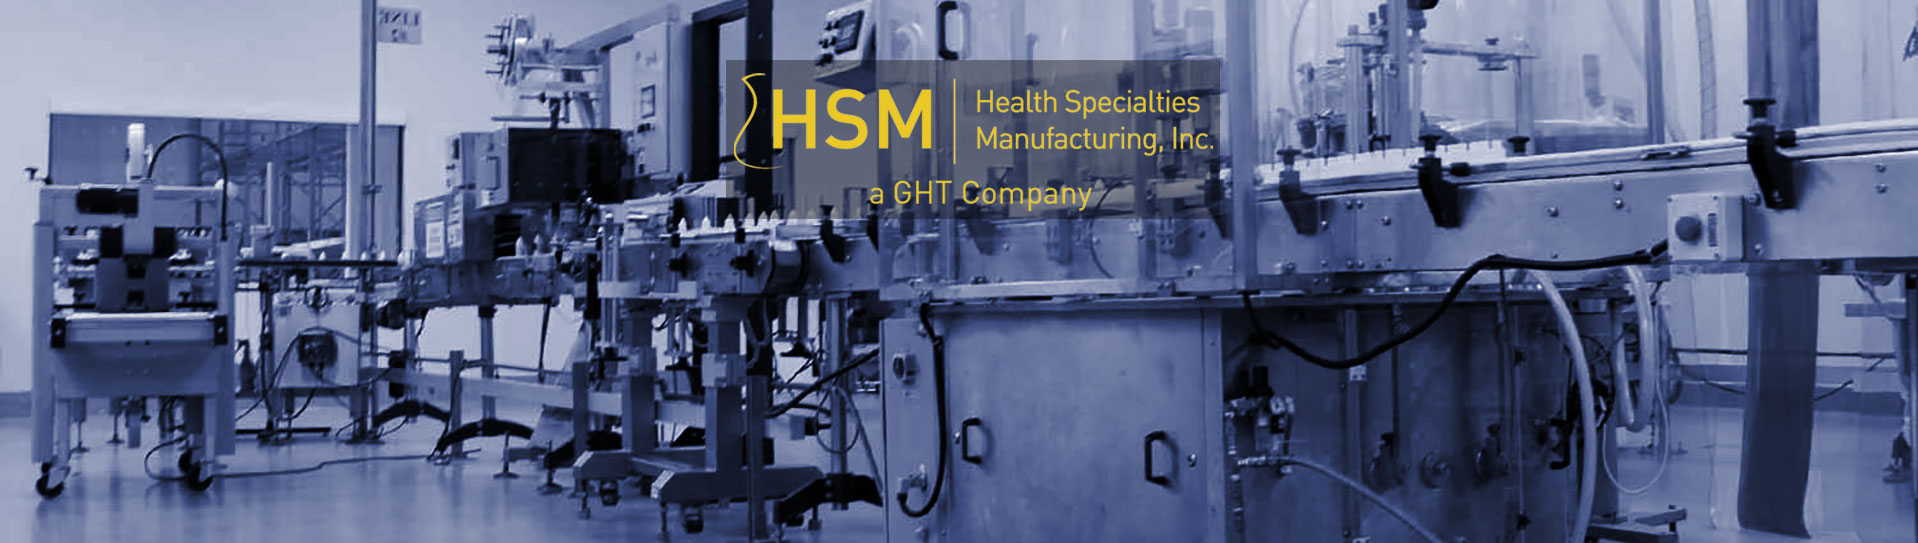 Health specialties manufacturing inc a GHT company